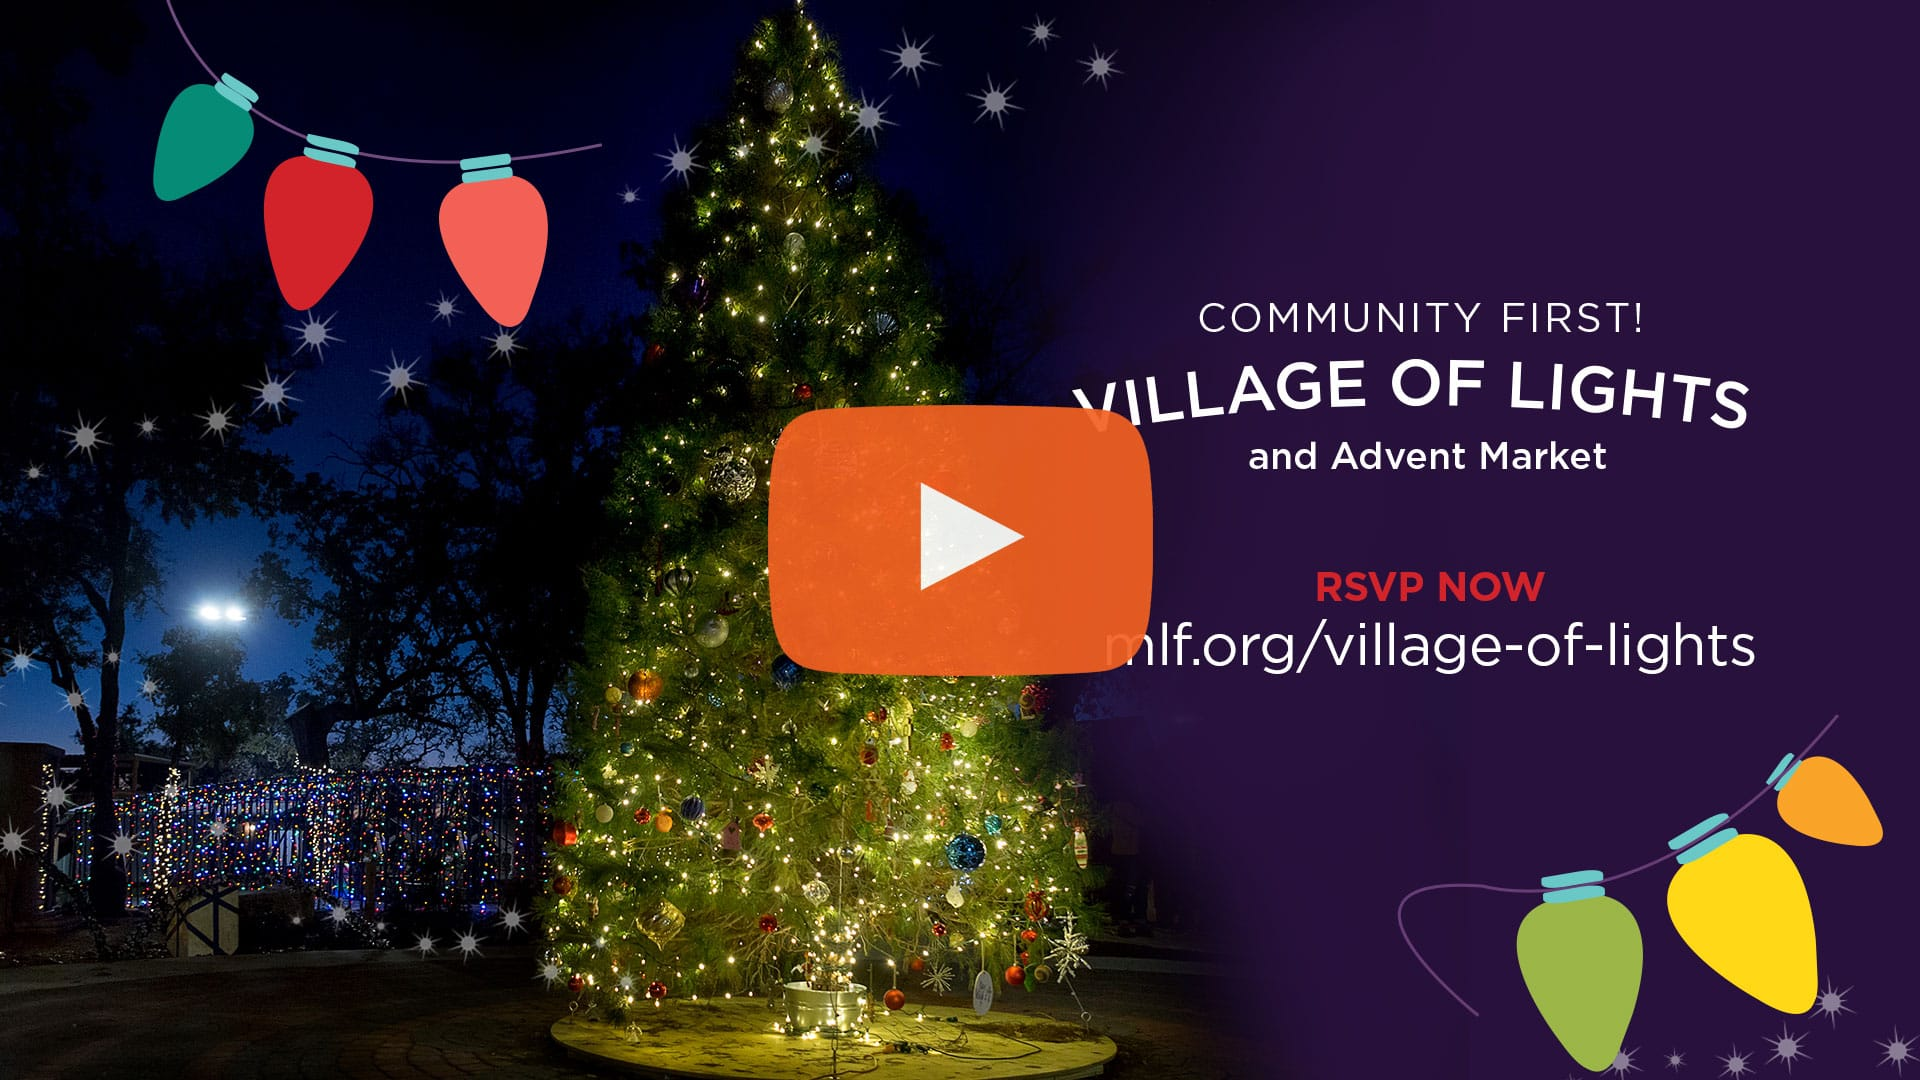 artisans who live at the village your purchase of gifts and concessions during the event helps our community first neighbors earn a dignified income